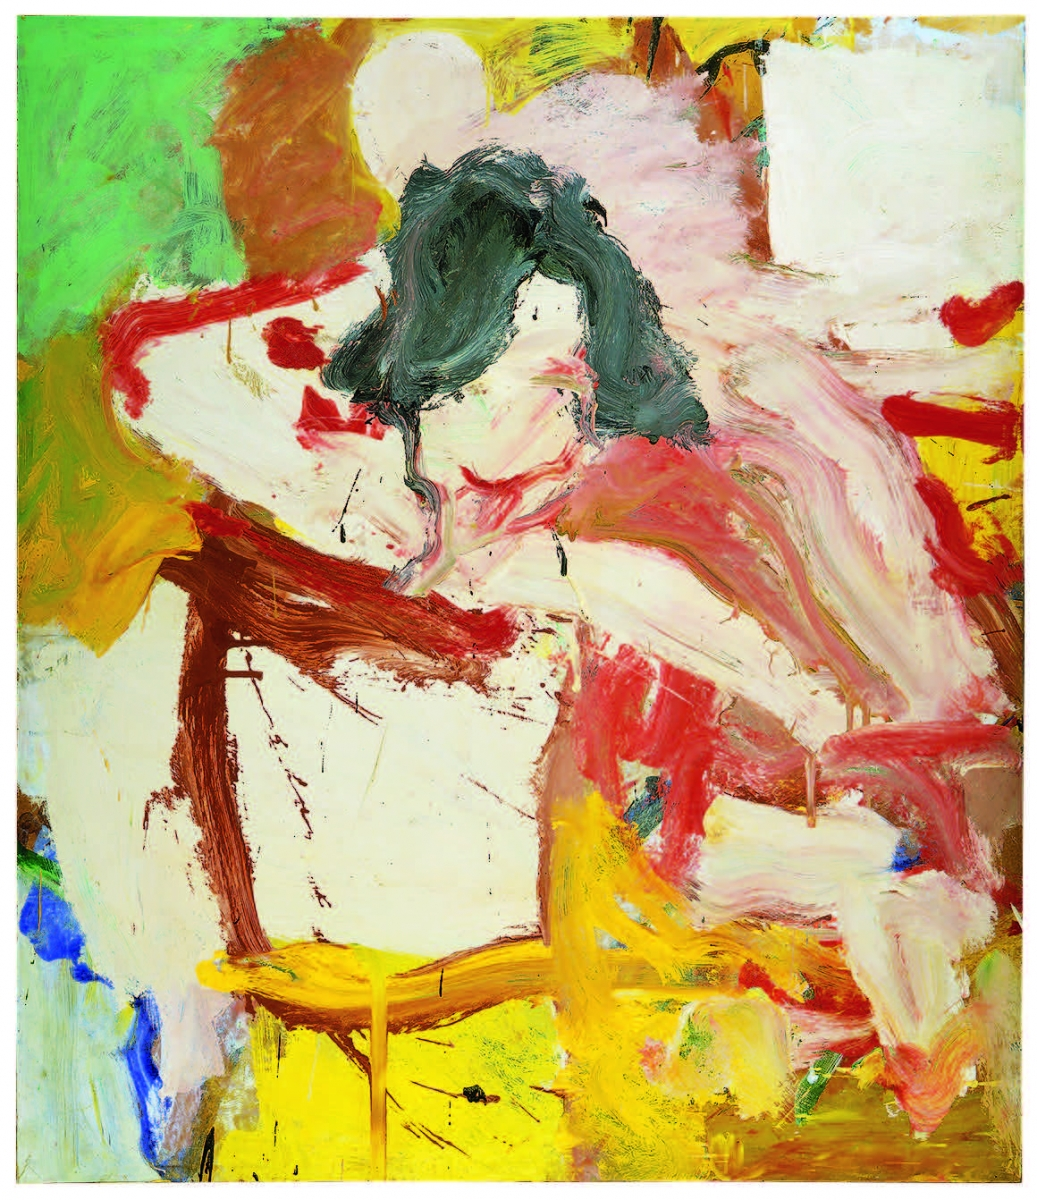 Willem de Kooning (American, born The Netherlands, 1904–1997), Woman, 1968. Oil on paper on canvas, 142.2 x 121.9 cm. Collection The Willem de Kooning Foundation. © 2016 The Willem de Kooning Foundation / Artists Rights Society, NY